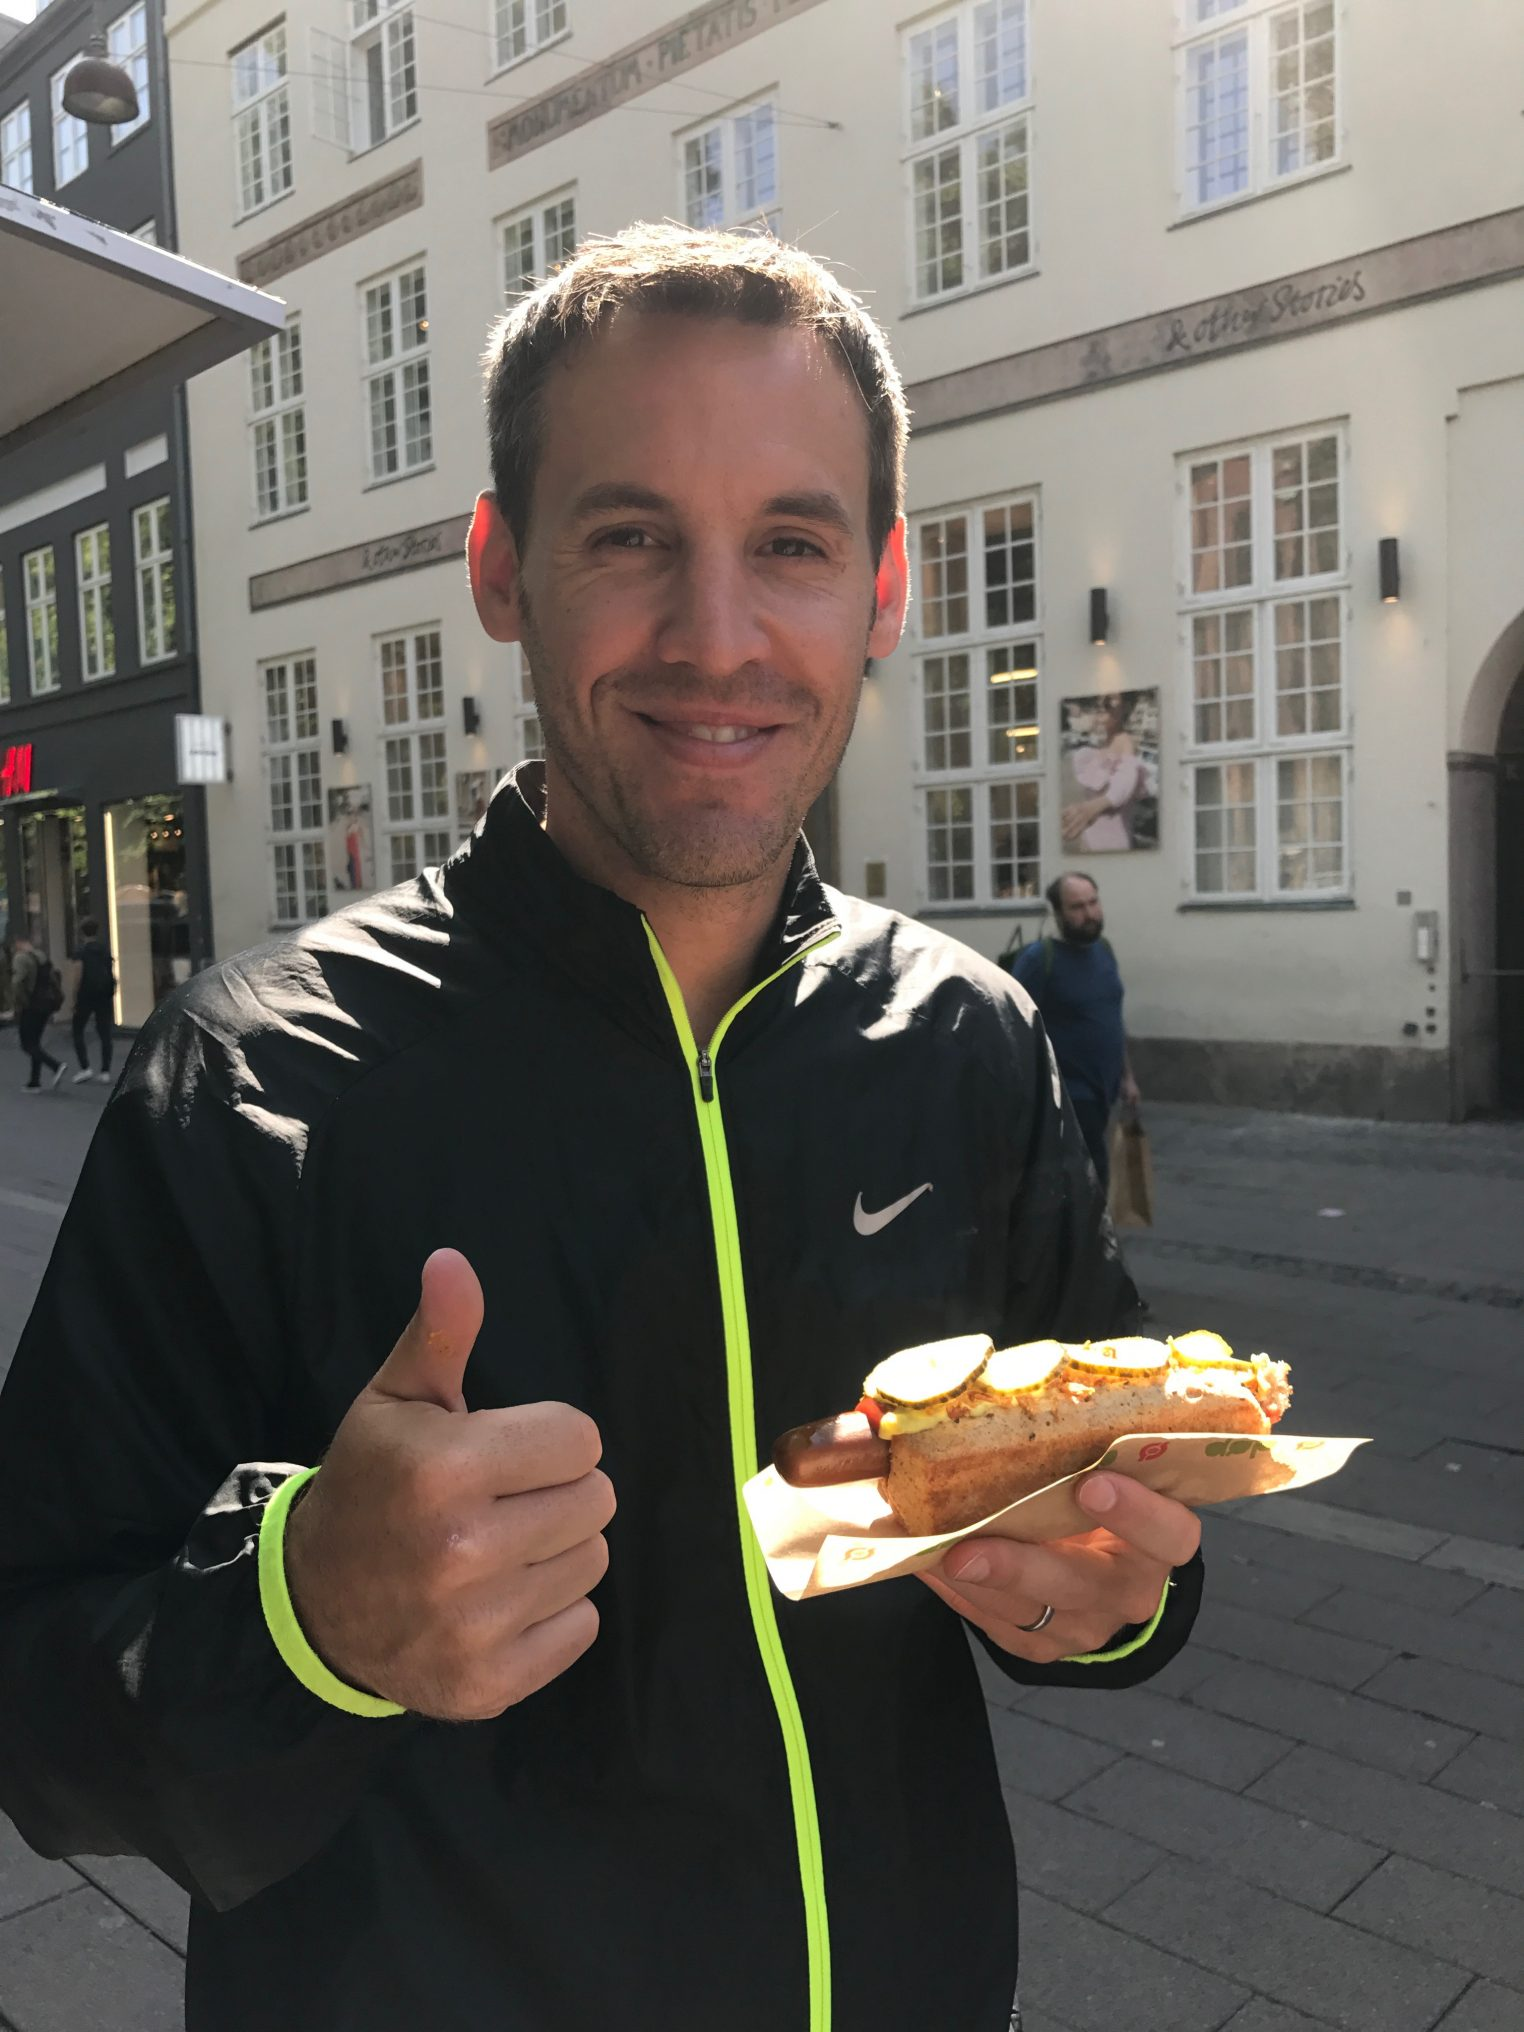 BL was so excited to find a veggie dog! It's much easier to be vegetarian in Denmark now than it was 15 years ago when I was last there, but it still isn't the easiest.